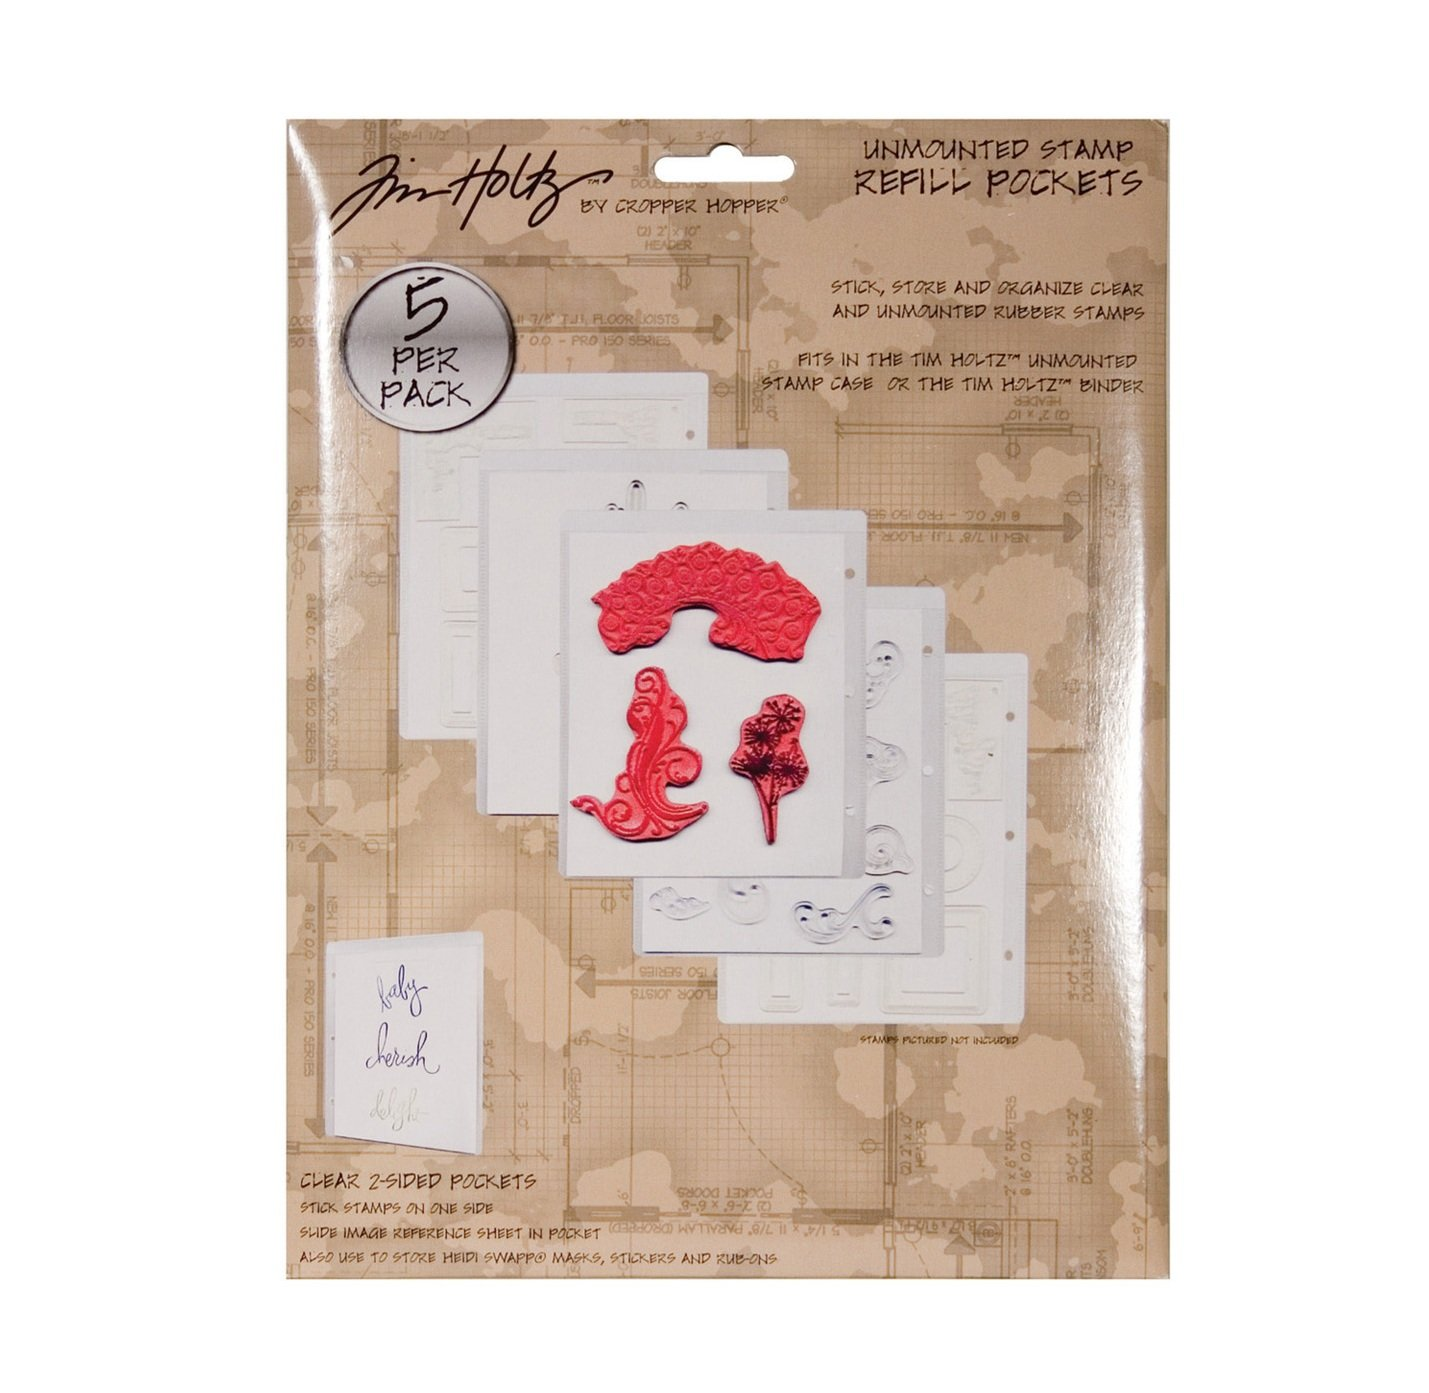 Unmounted Stamp Refill Sheets by Tim Holtz Idea-ology, 5 per Pack, 10 x 7.5 x .25 Inches, Plastic, TH92473 by Tim Holtz Idea-ology